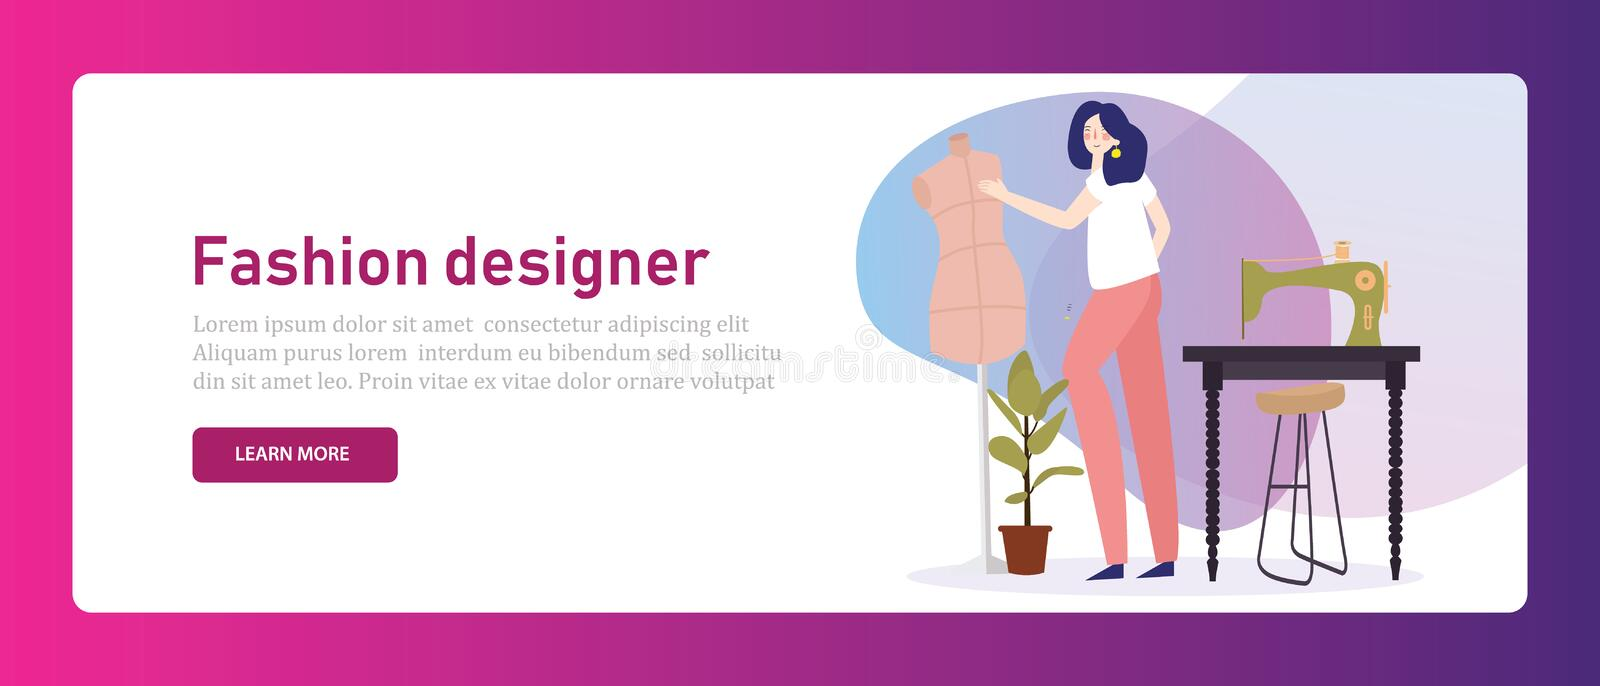 Fashion designer tailor. Girl working with sewing machine garment clothing dress maker in creative studio stylish vector illustration